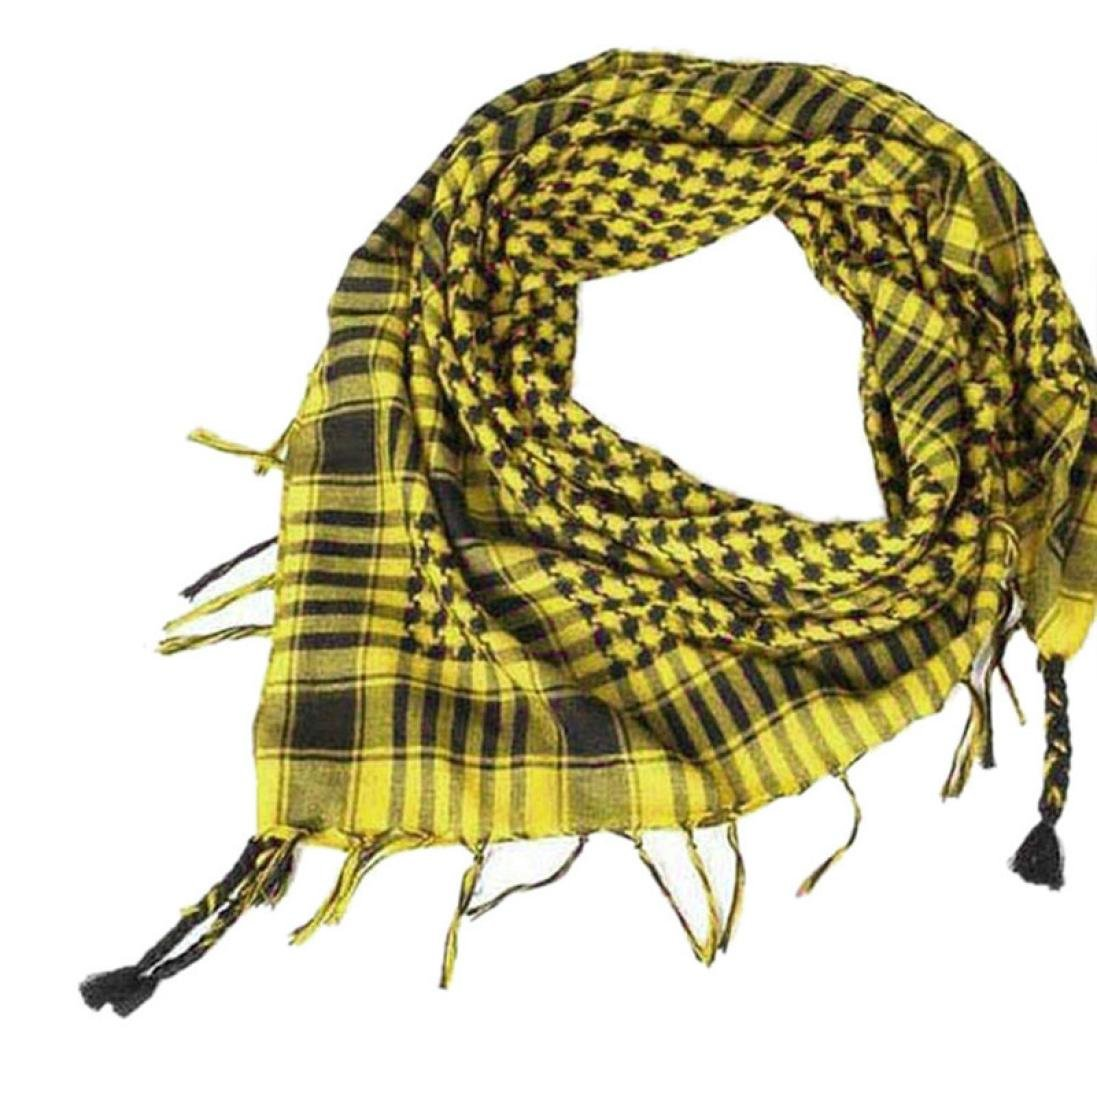 Unisex Fashion Plaid Scarf Shawl, Keepfit Arab Shemagh Keffiyeh Palestine Classic Shawl Wrap for Women Men (Yellow)